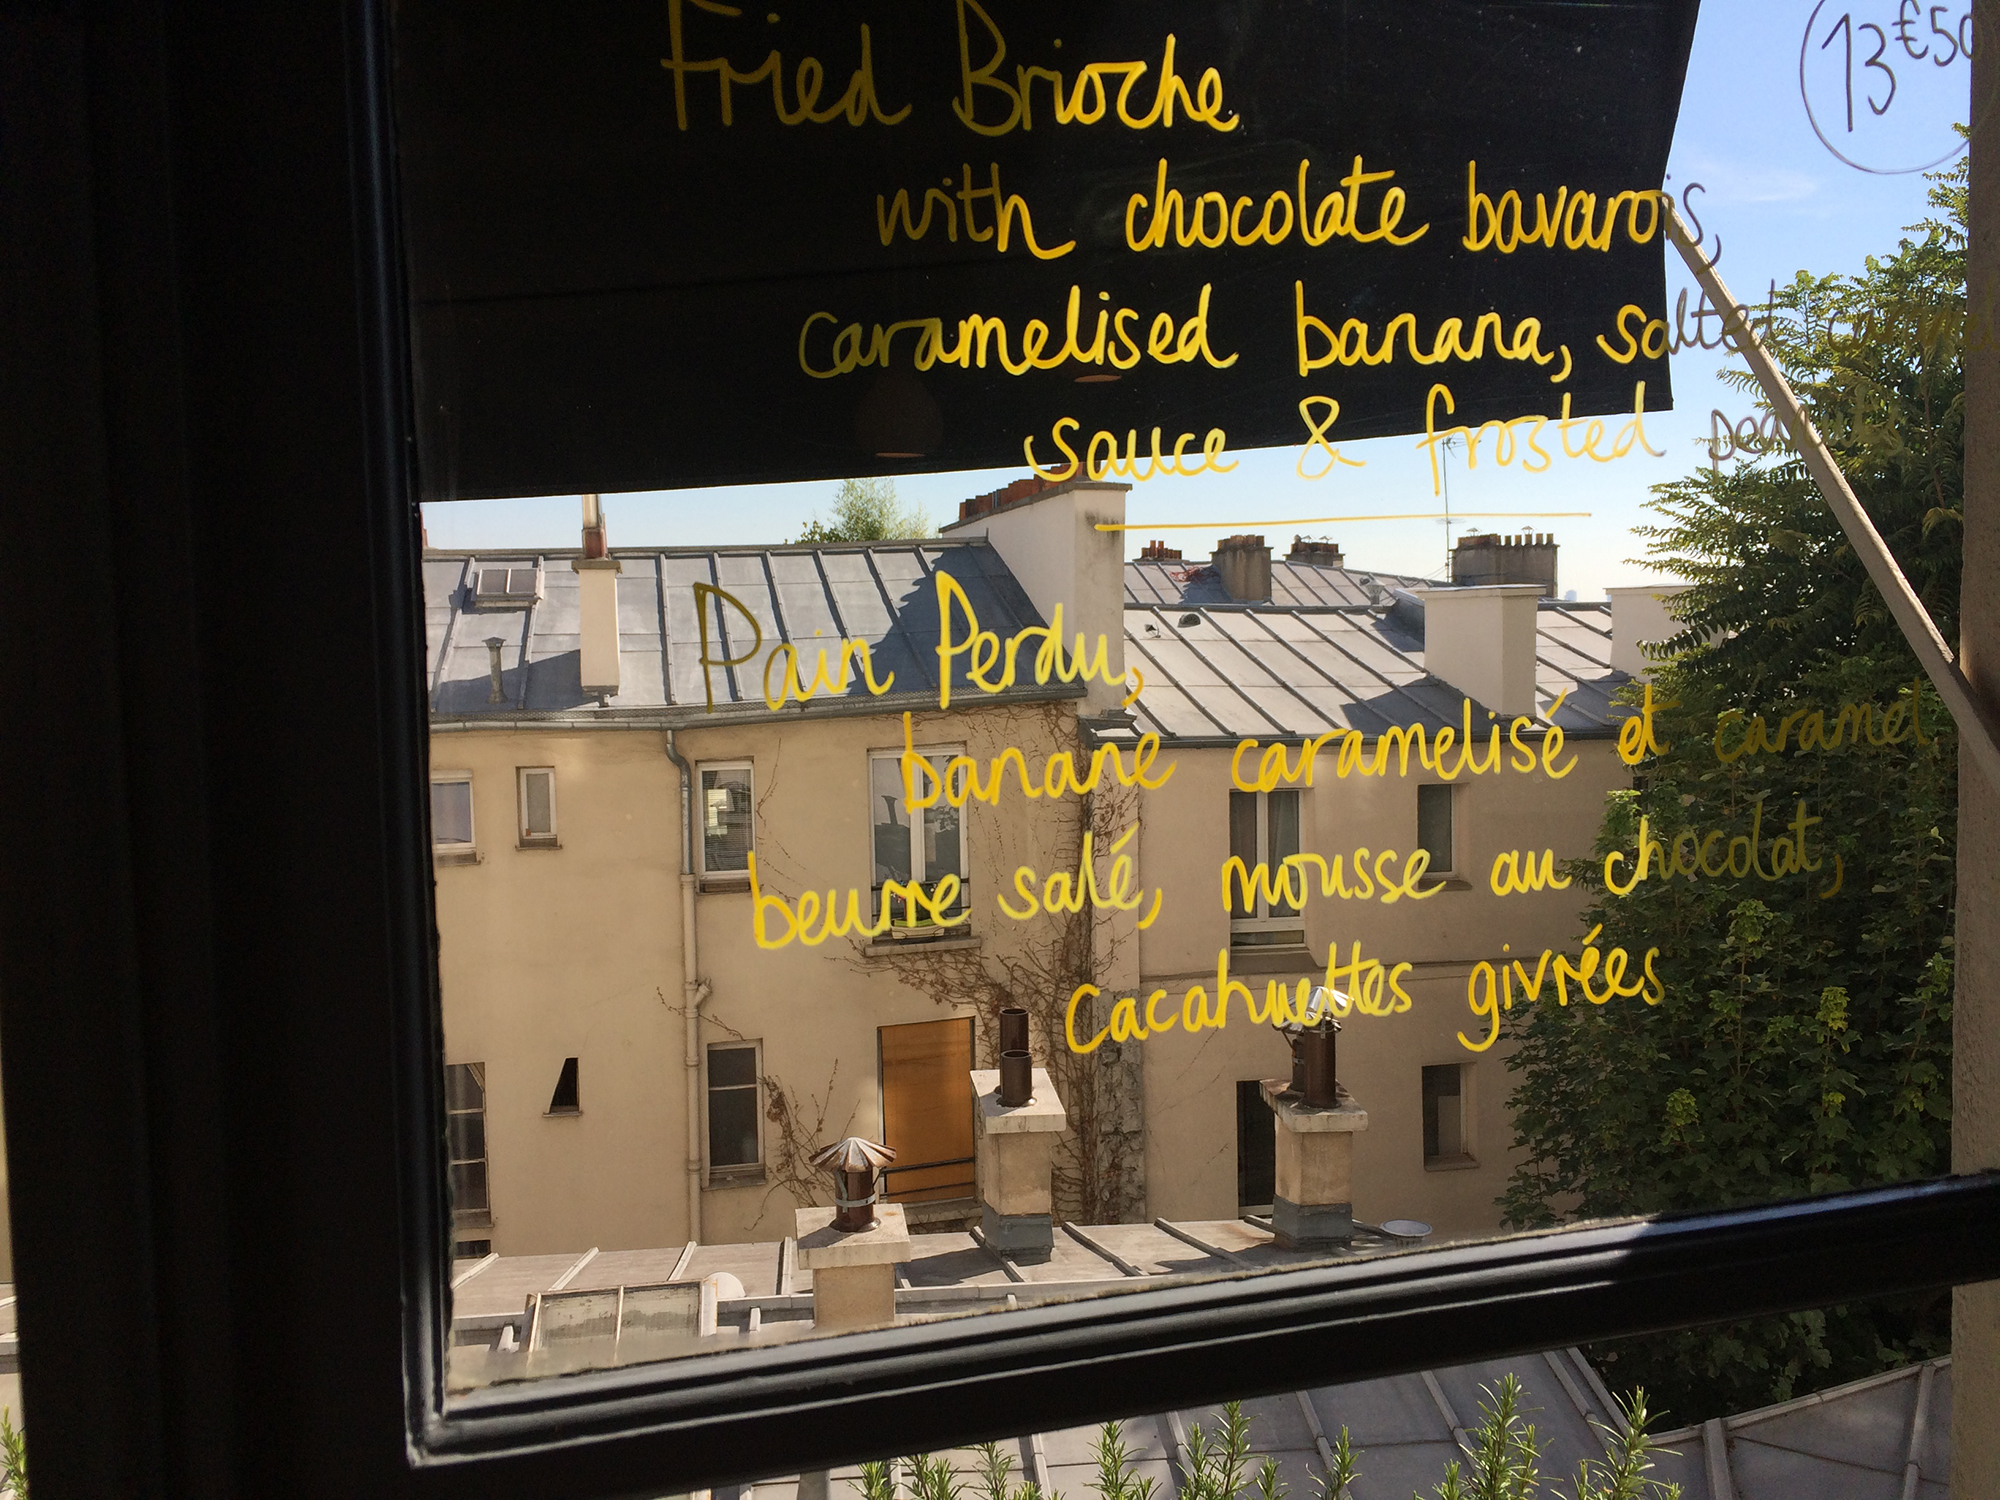 The handwritten menu on the window of go-to Paris coffee shop Hardware Sociéte in Montmartre. You can see the apartment buildings with zinc rooftops reflected in the window.